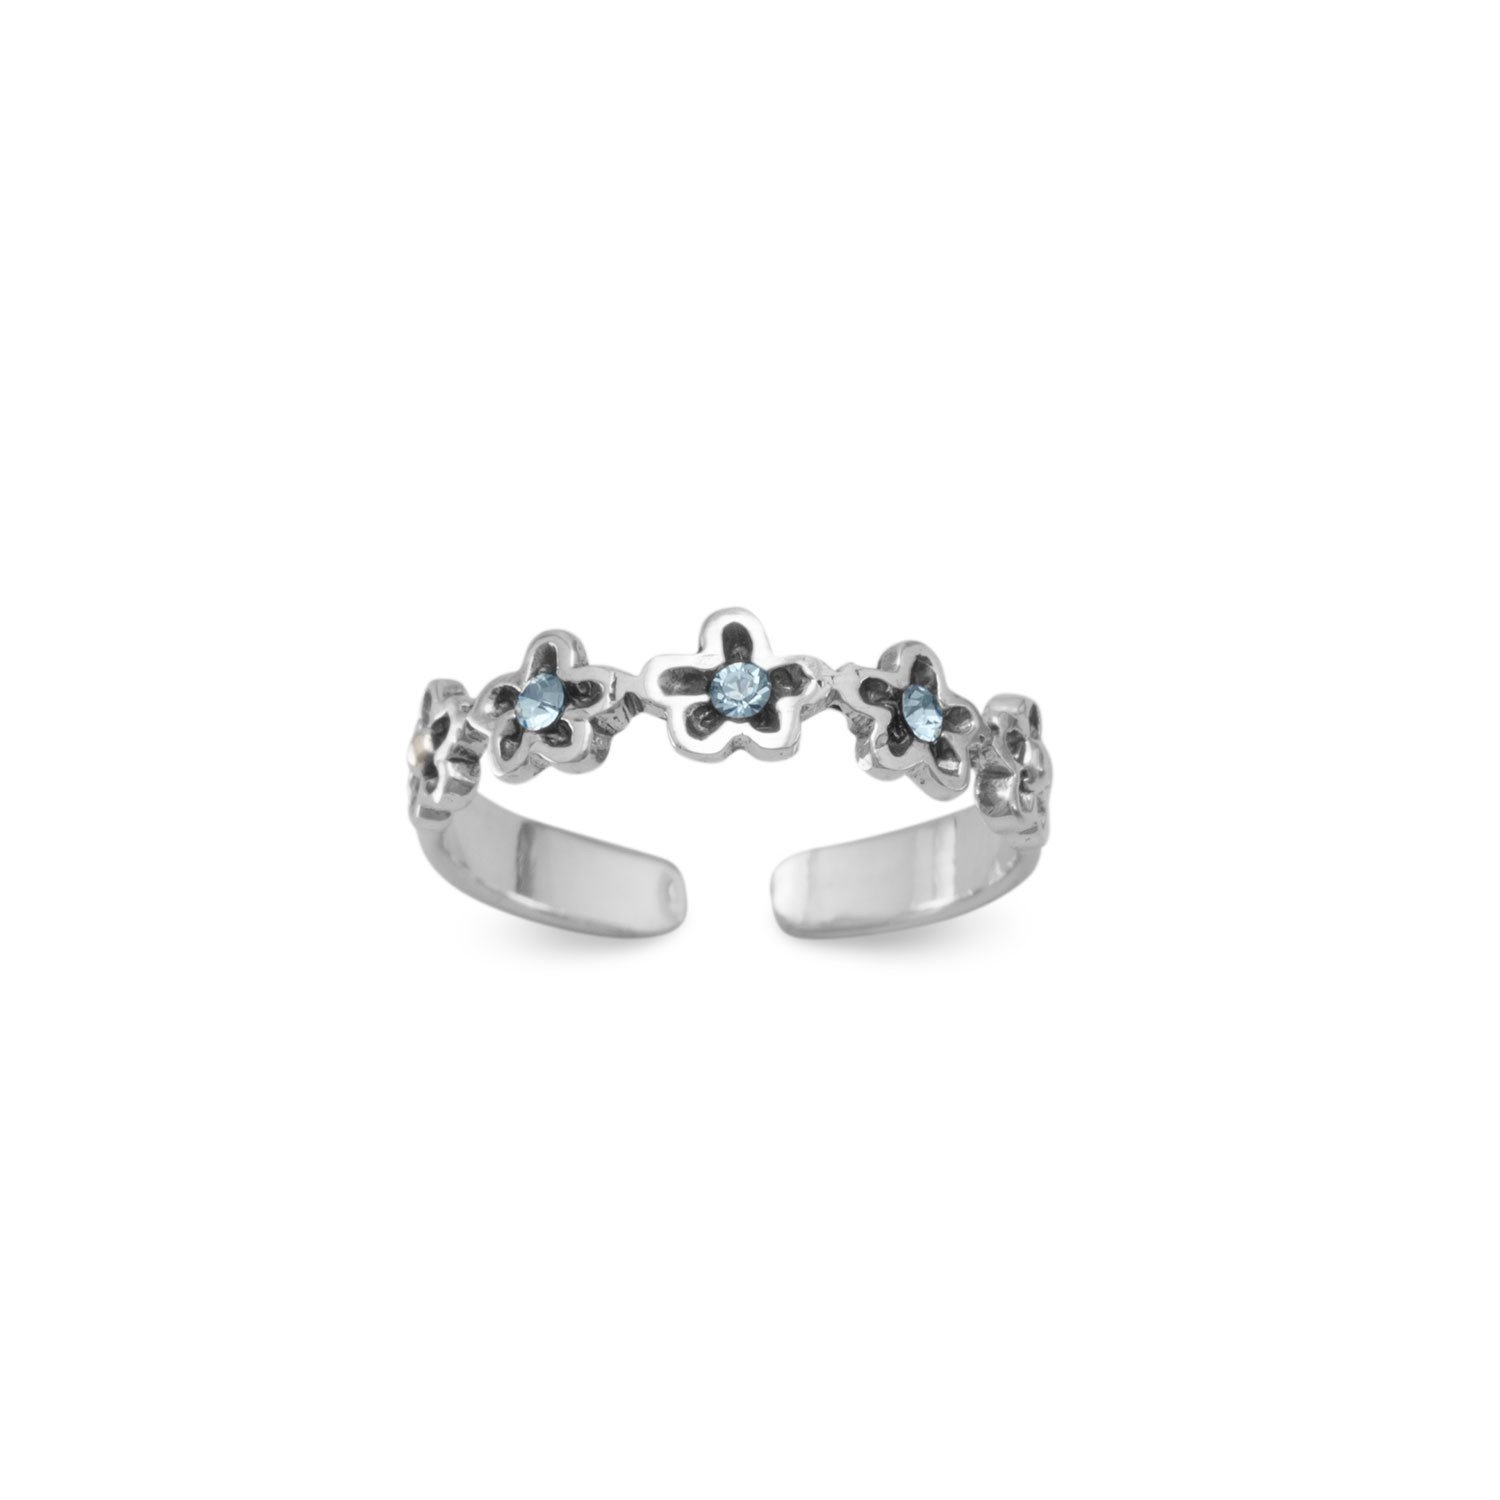 Oxidized Toe Ring with Blue Crystal Flowers